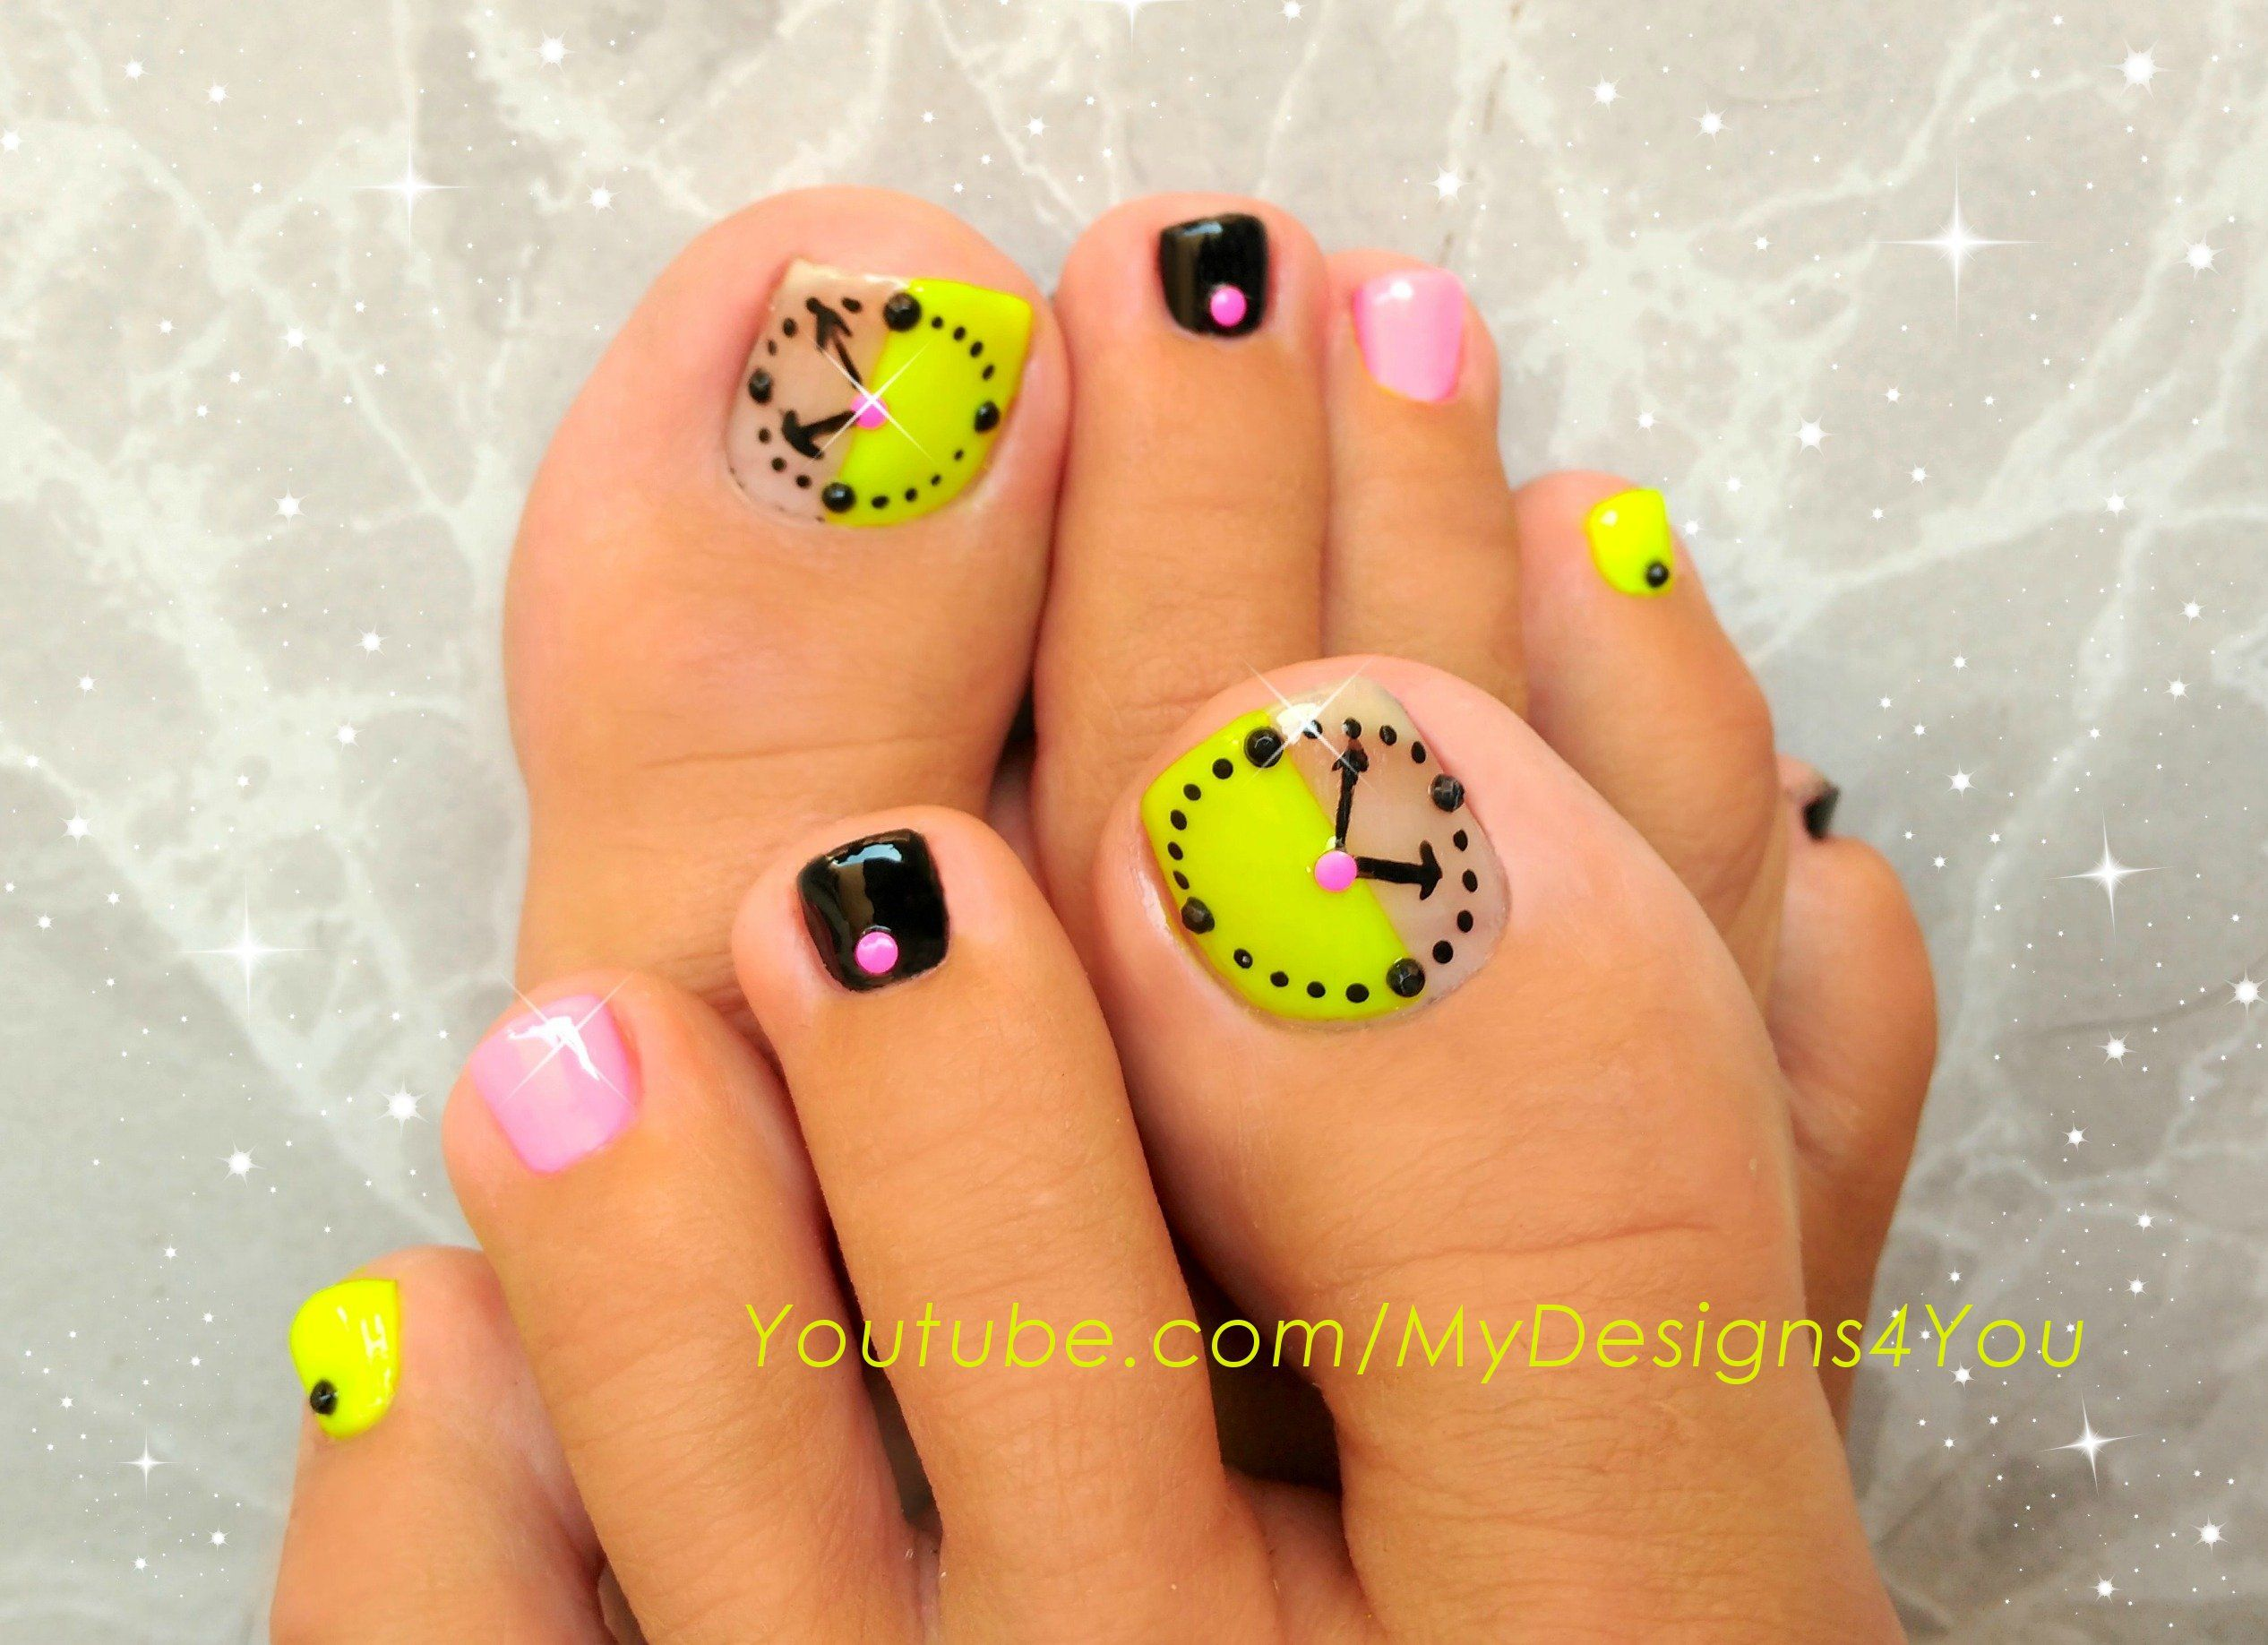 Fun Neon Clock Toenail Art Design Pedicure Nailart Nails Toenailart